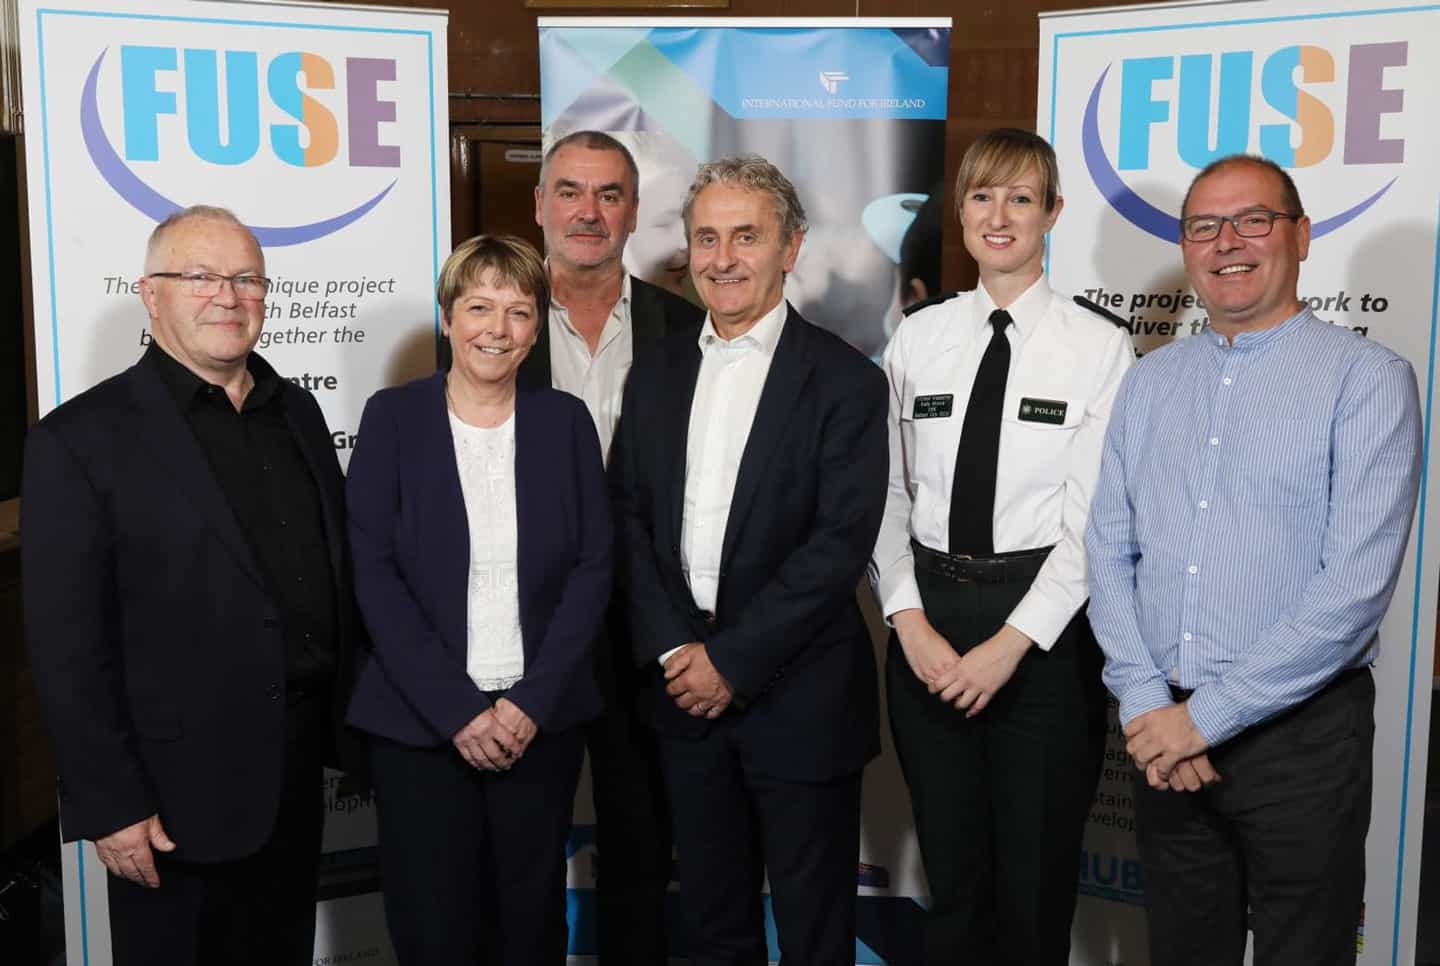 Launch of FUSE project aimed at community cohesion in North Belfast